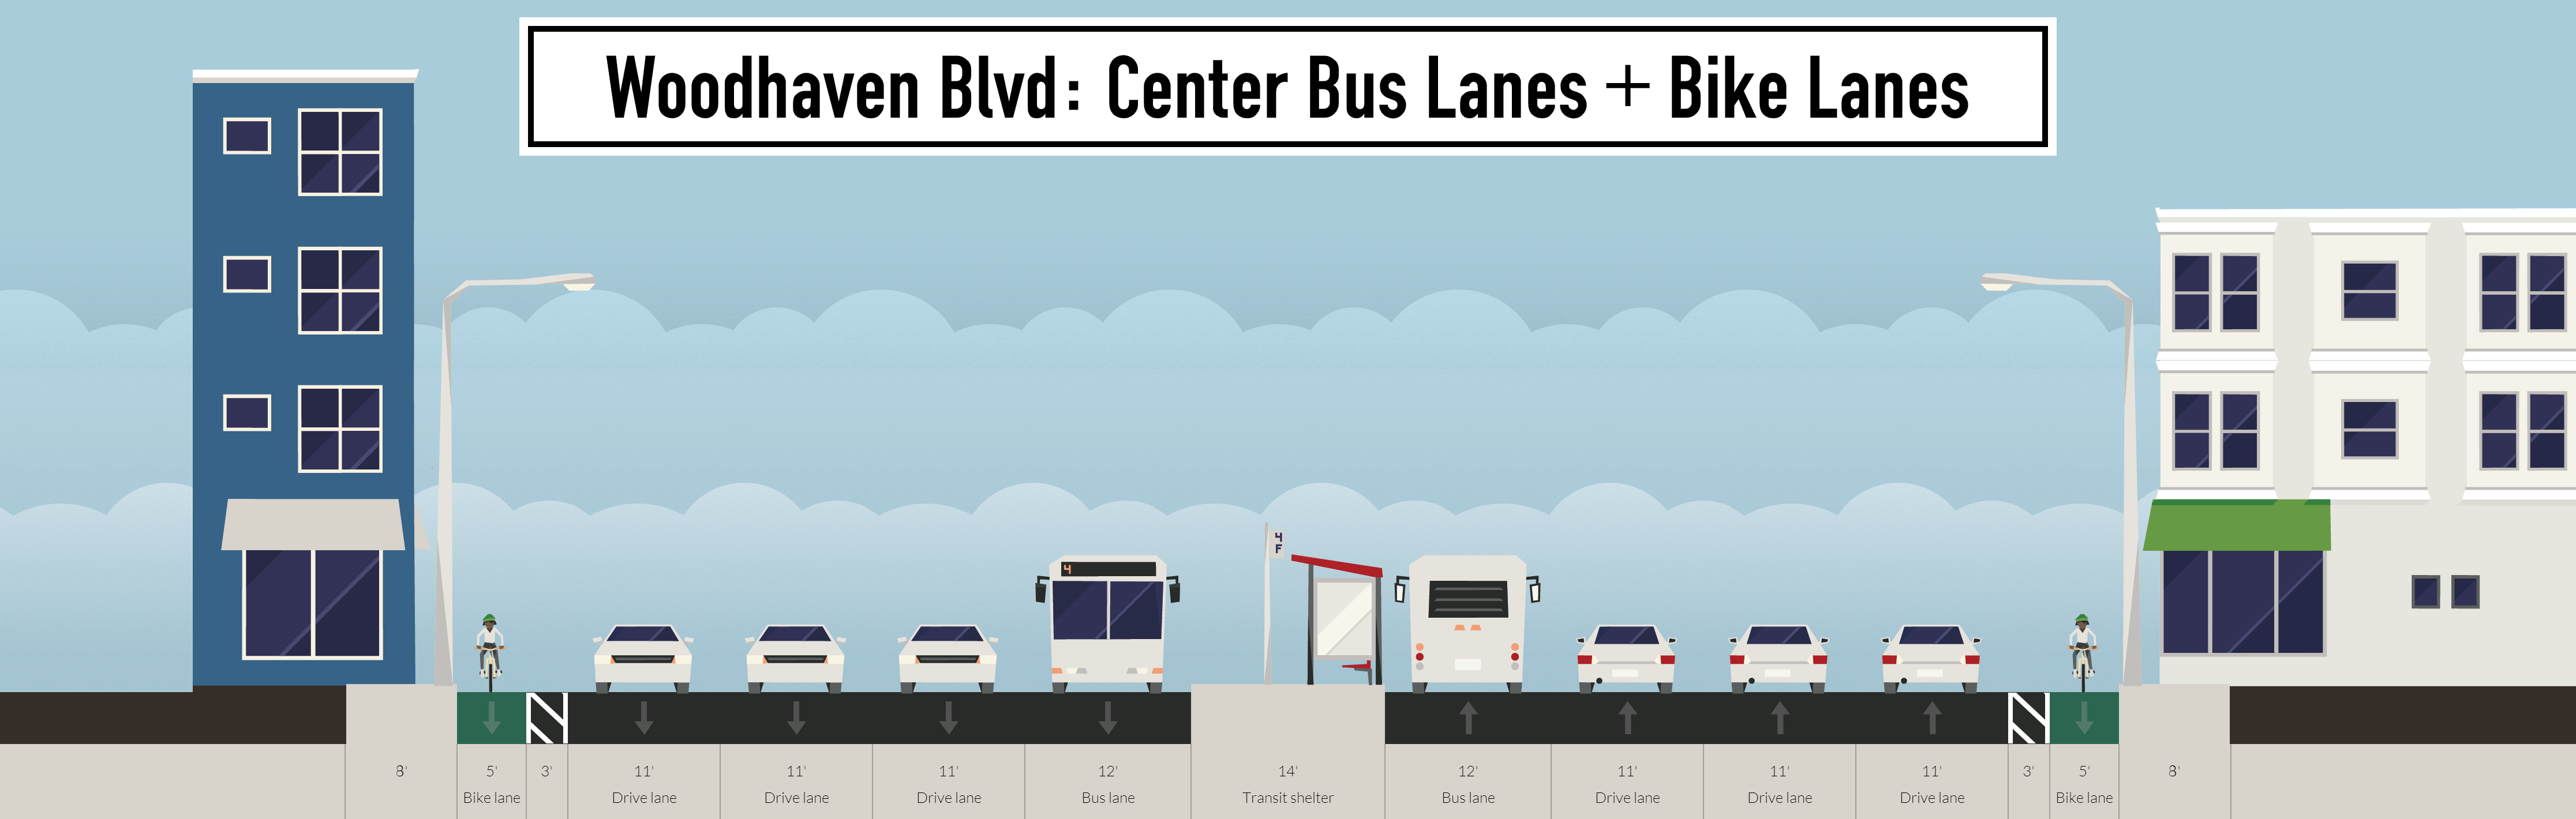 woodhaven-blvd-center-bus-lanes--bike-lanes (2)